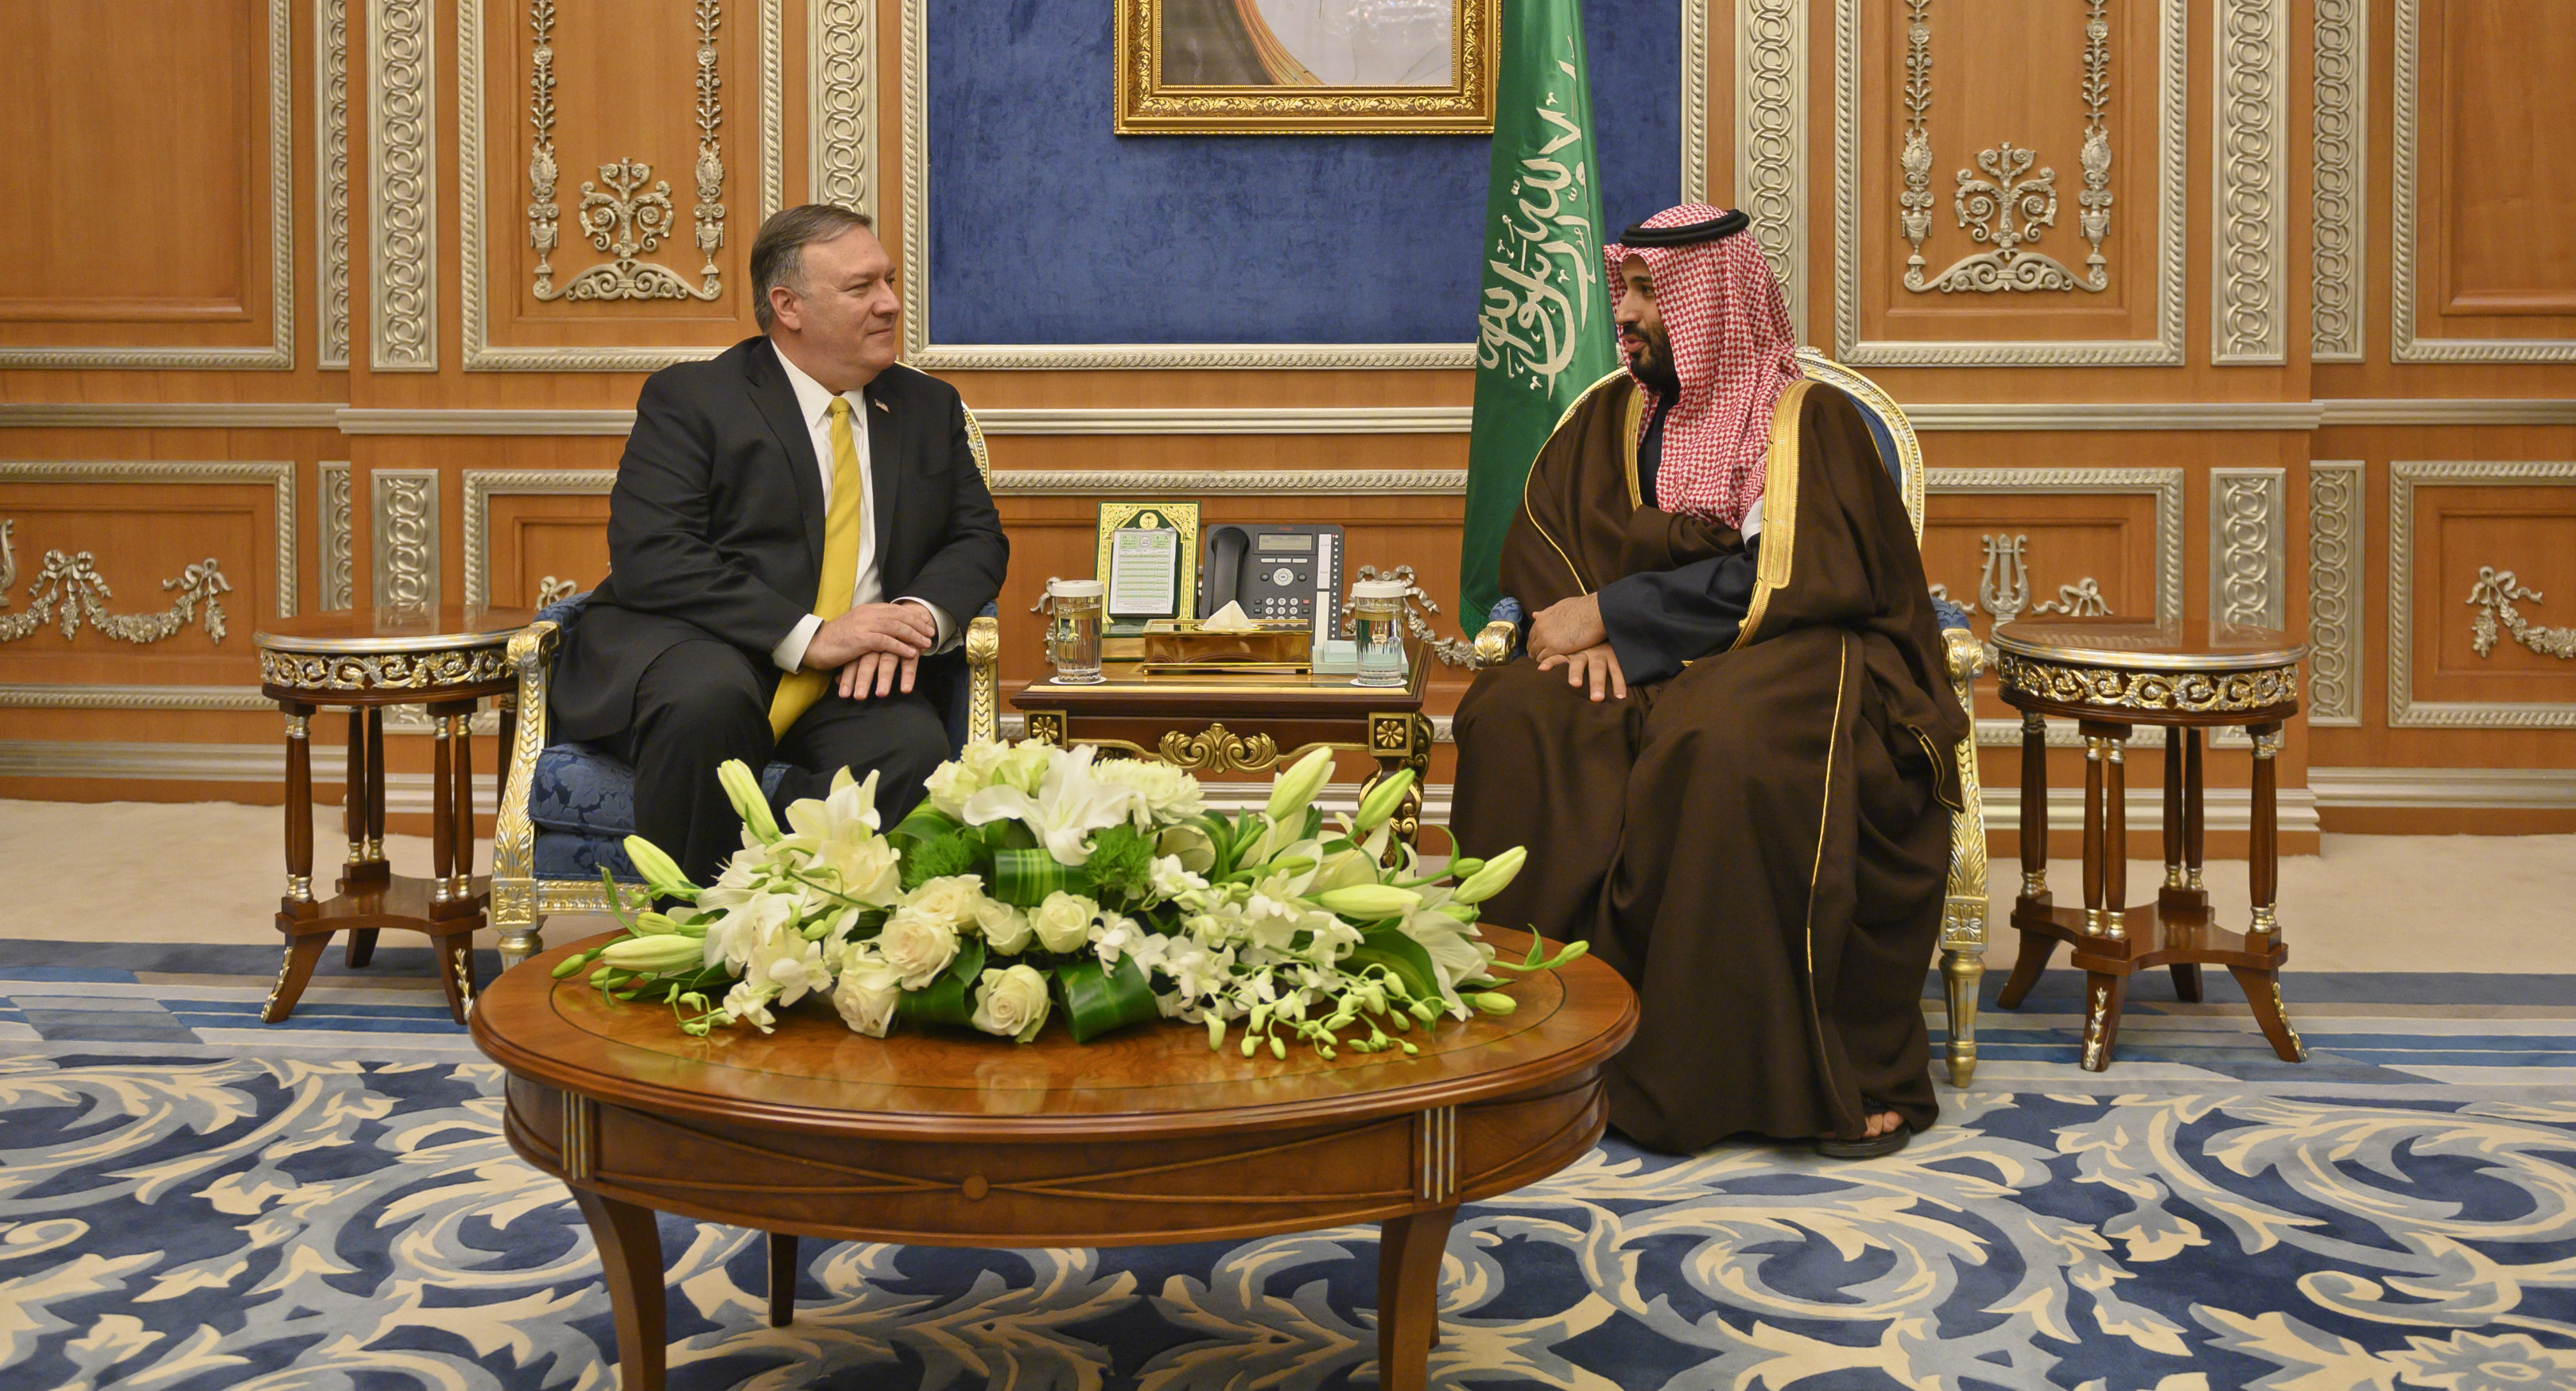 Saudi Crown Prince Mohammed bin Salman with US Secretary of State Mike Pompeo at the royal court in Riyadh on Monday, January 14, 2019.